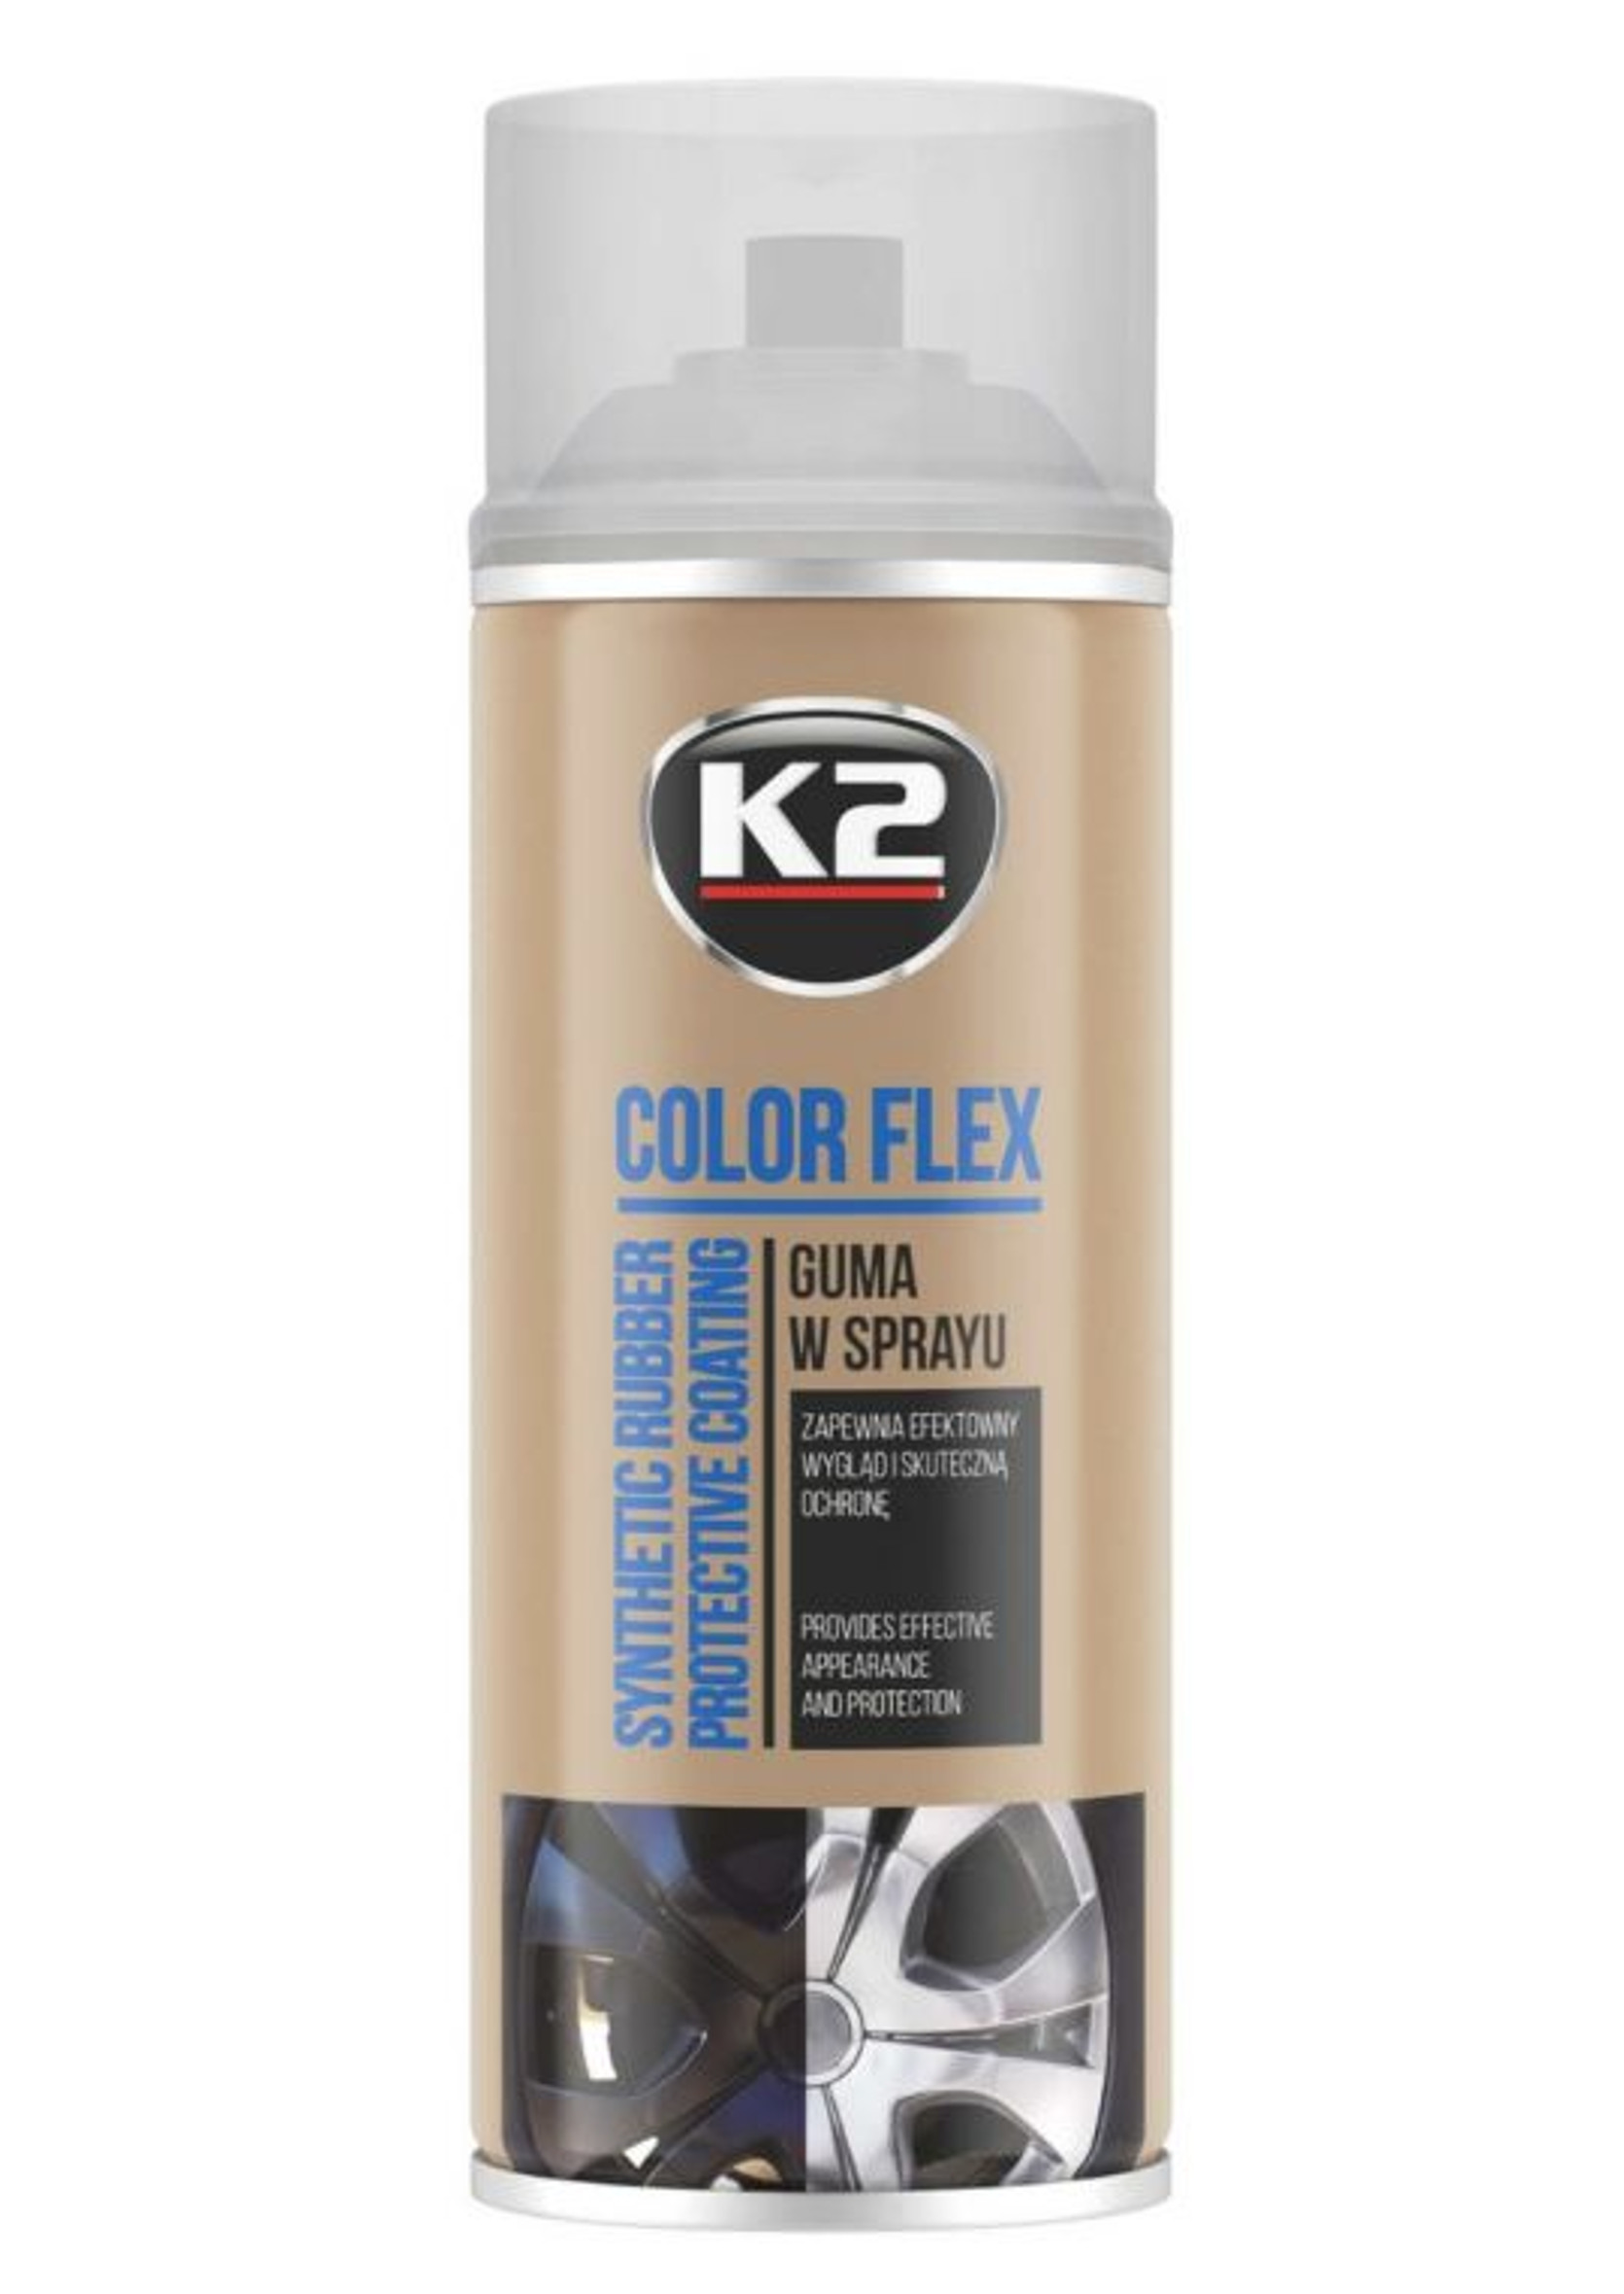 K2 Color Flex Bezbarwny 400ml Guma w Sprayu